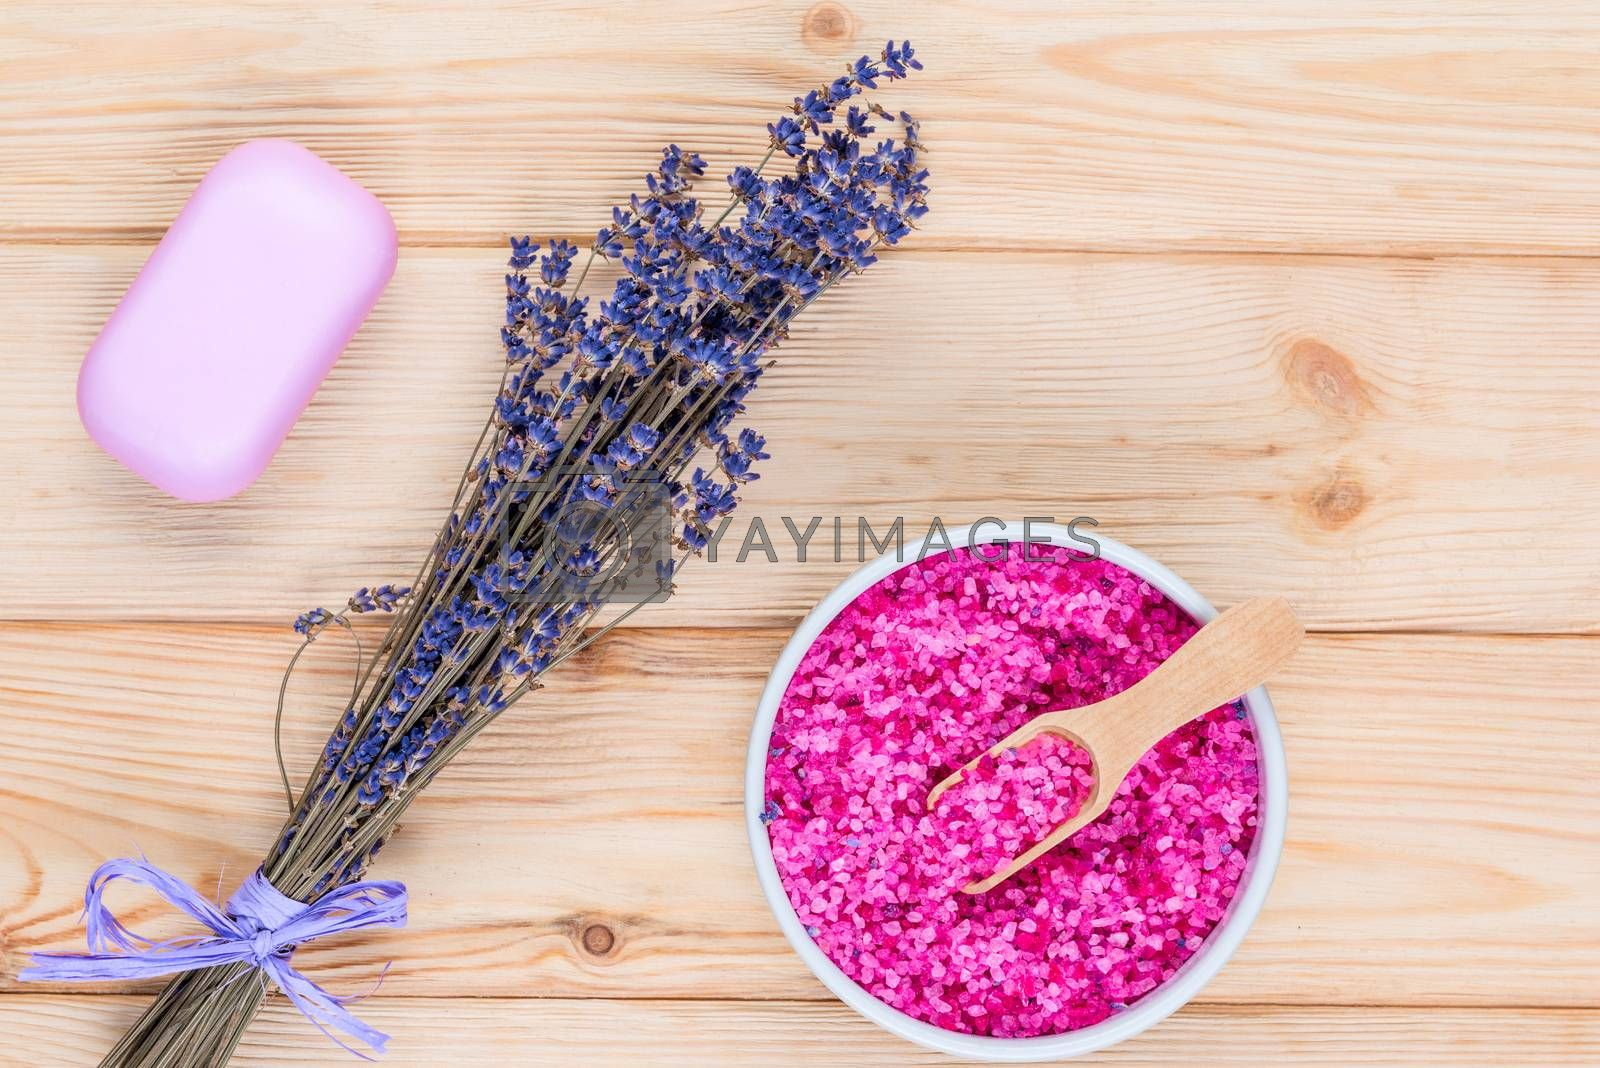 sea salt and soap with lavender extract for a bath on the boards by Labunskiy K.